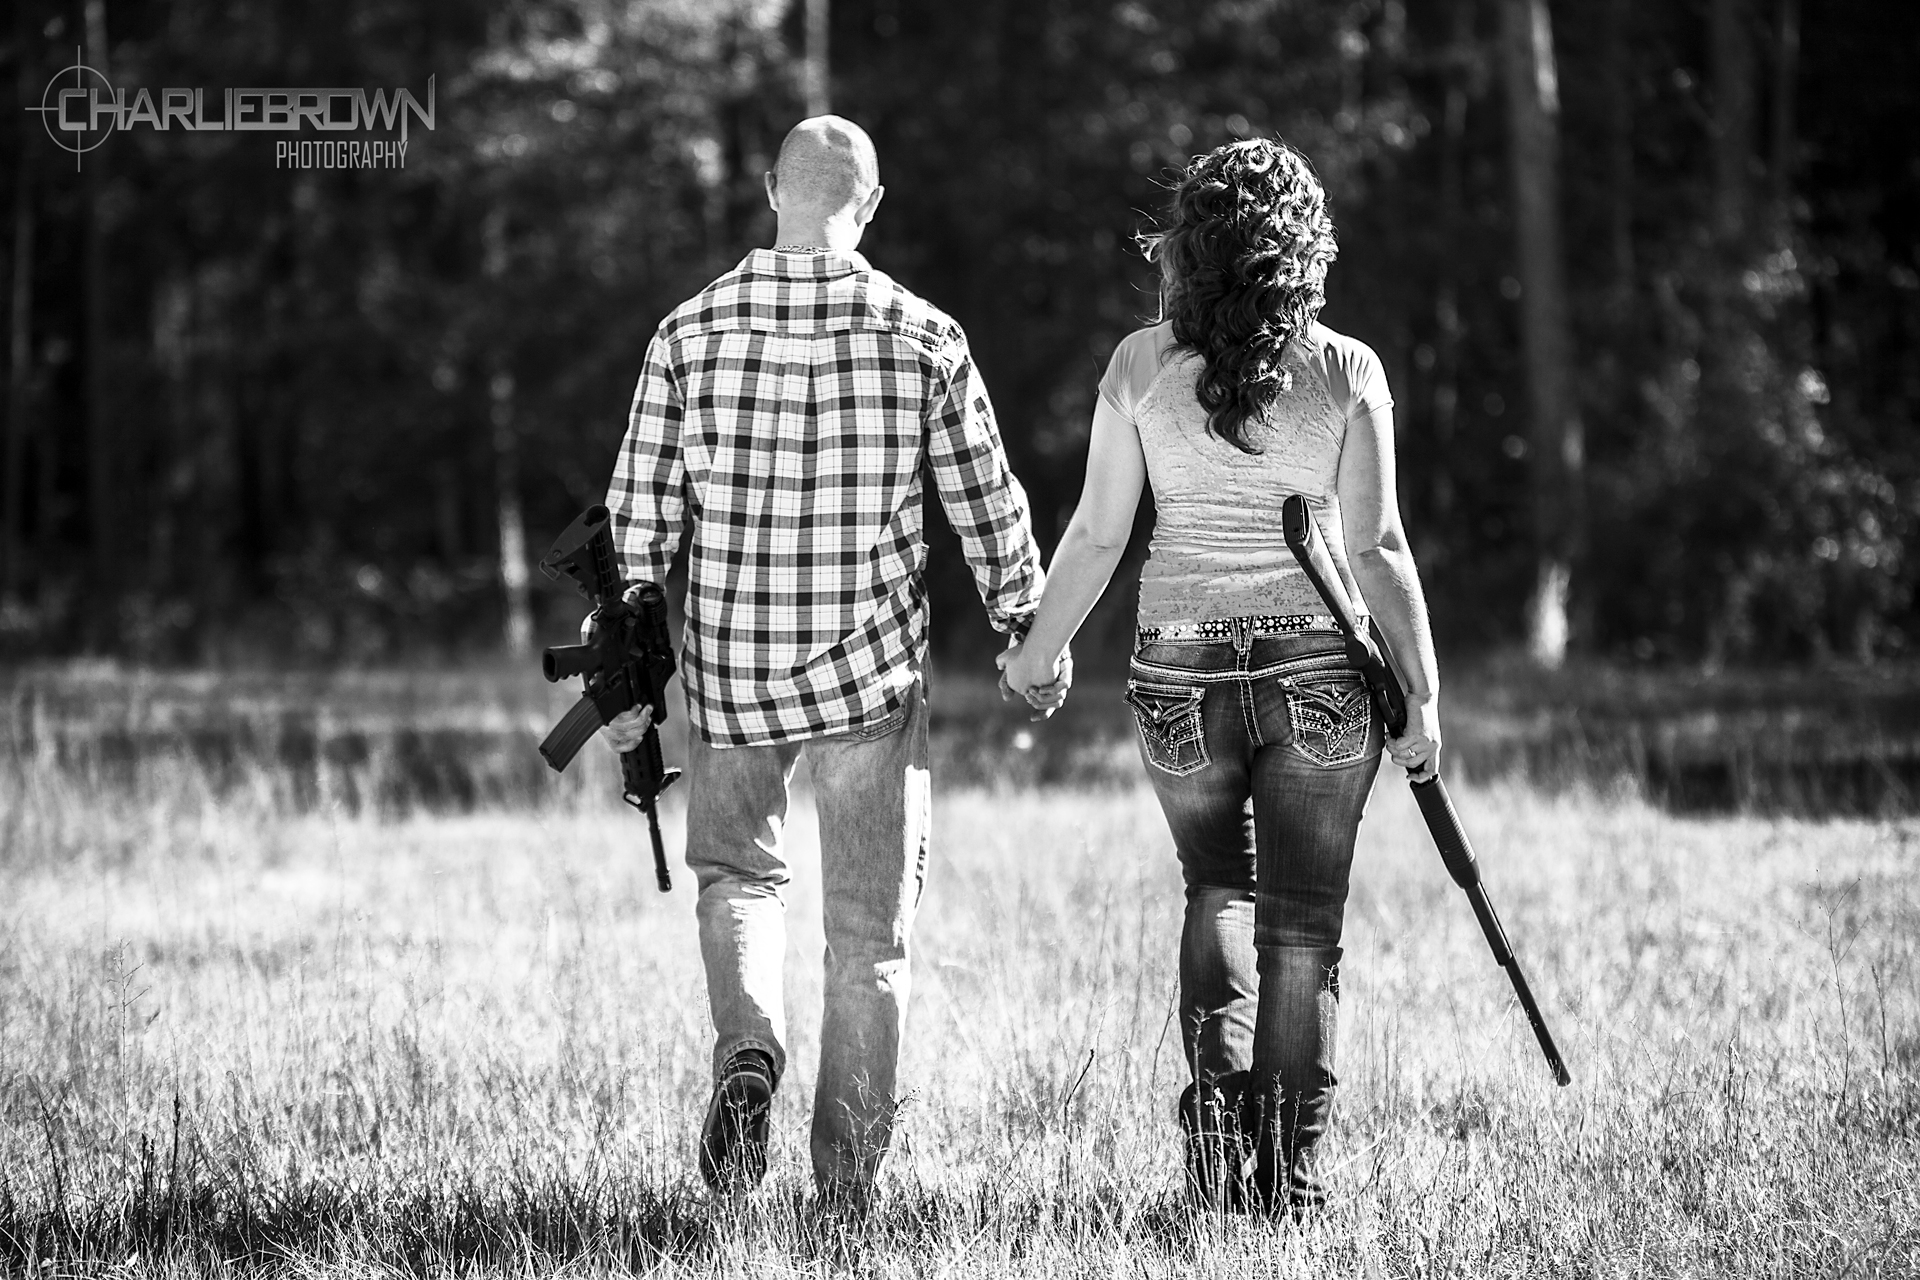 Black and white gun engagement portrait